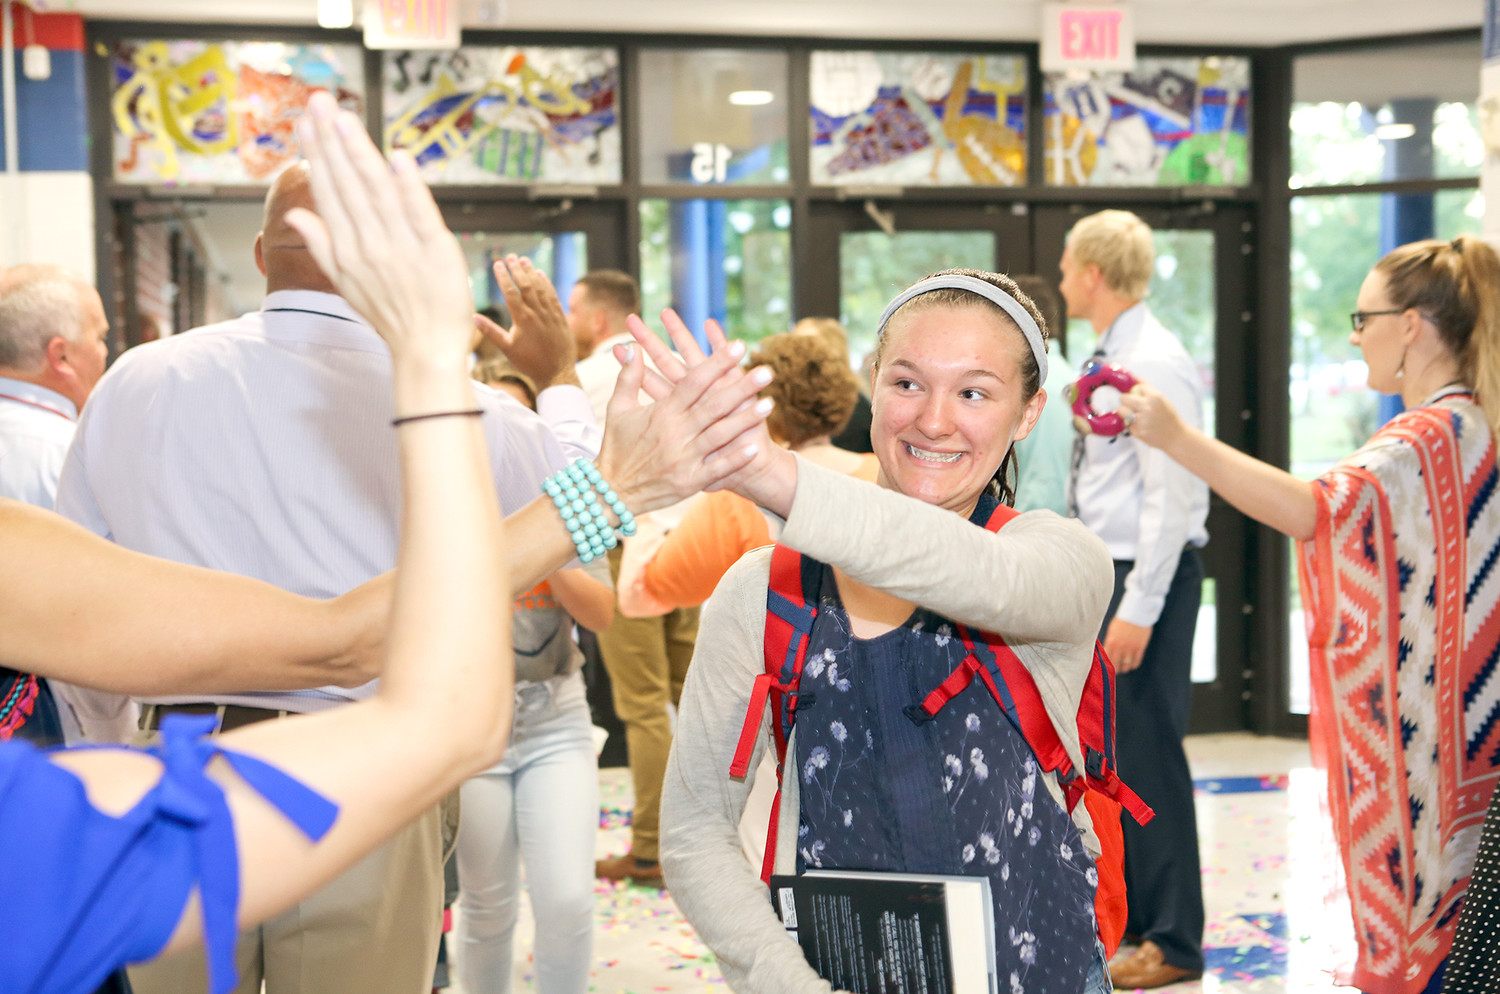 RETURNING CMS STUDENT Ella Lipscomb smiles brightly as she is greeted by a wall of teachers welcoming her back to Cleveland Middle School.